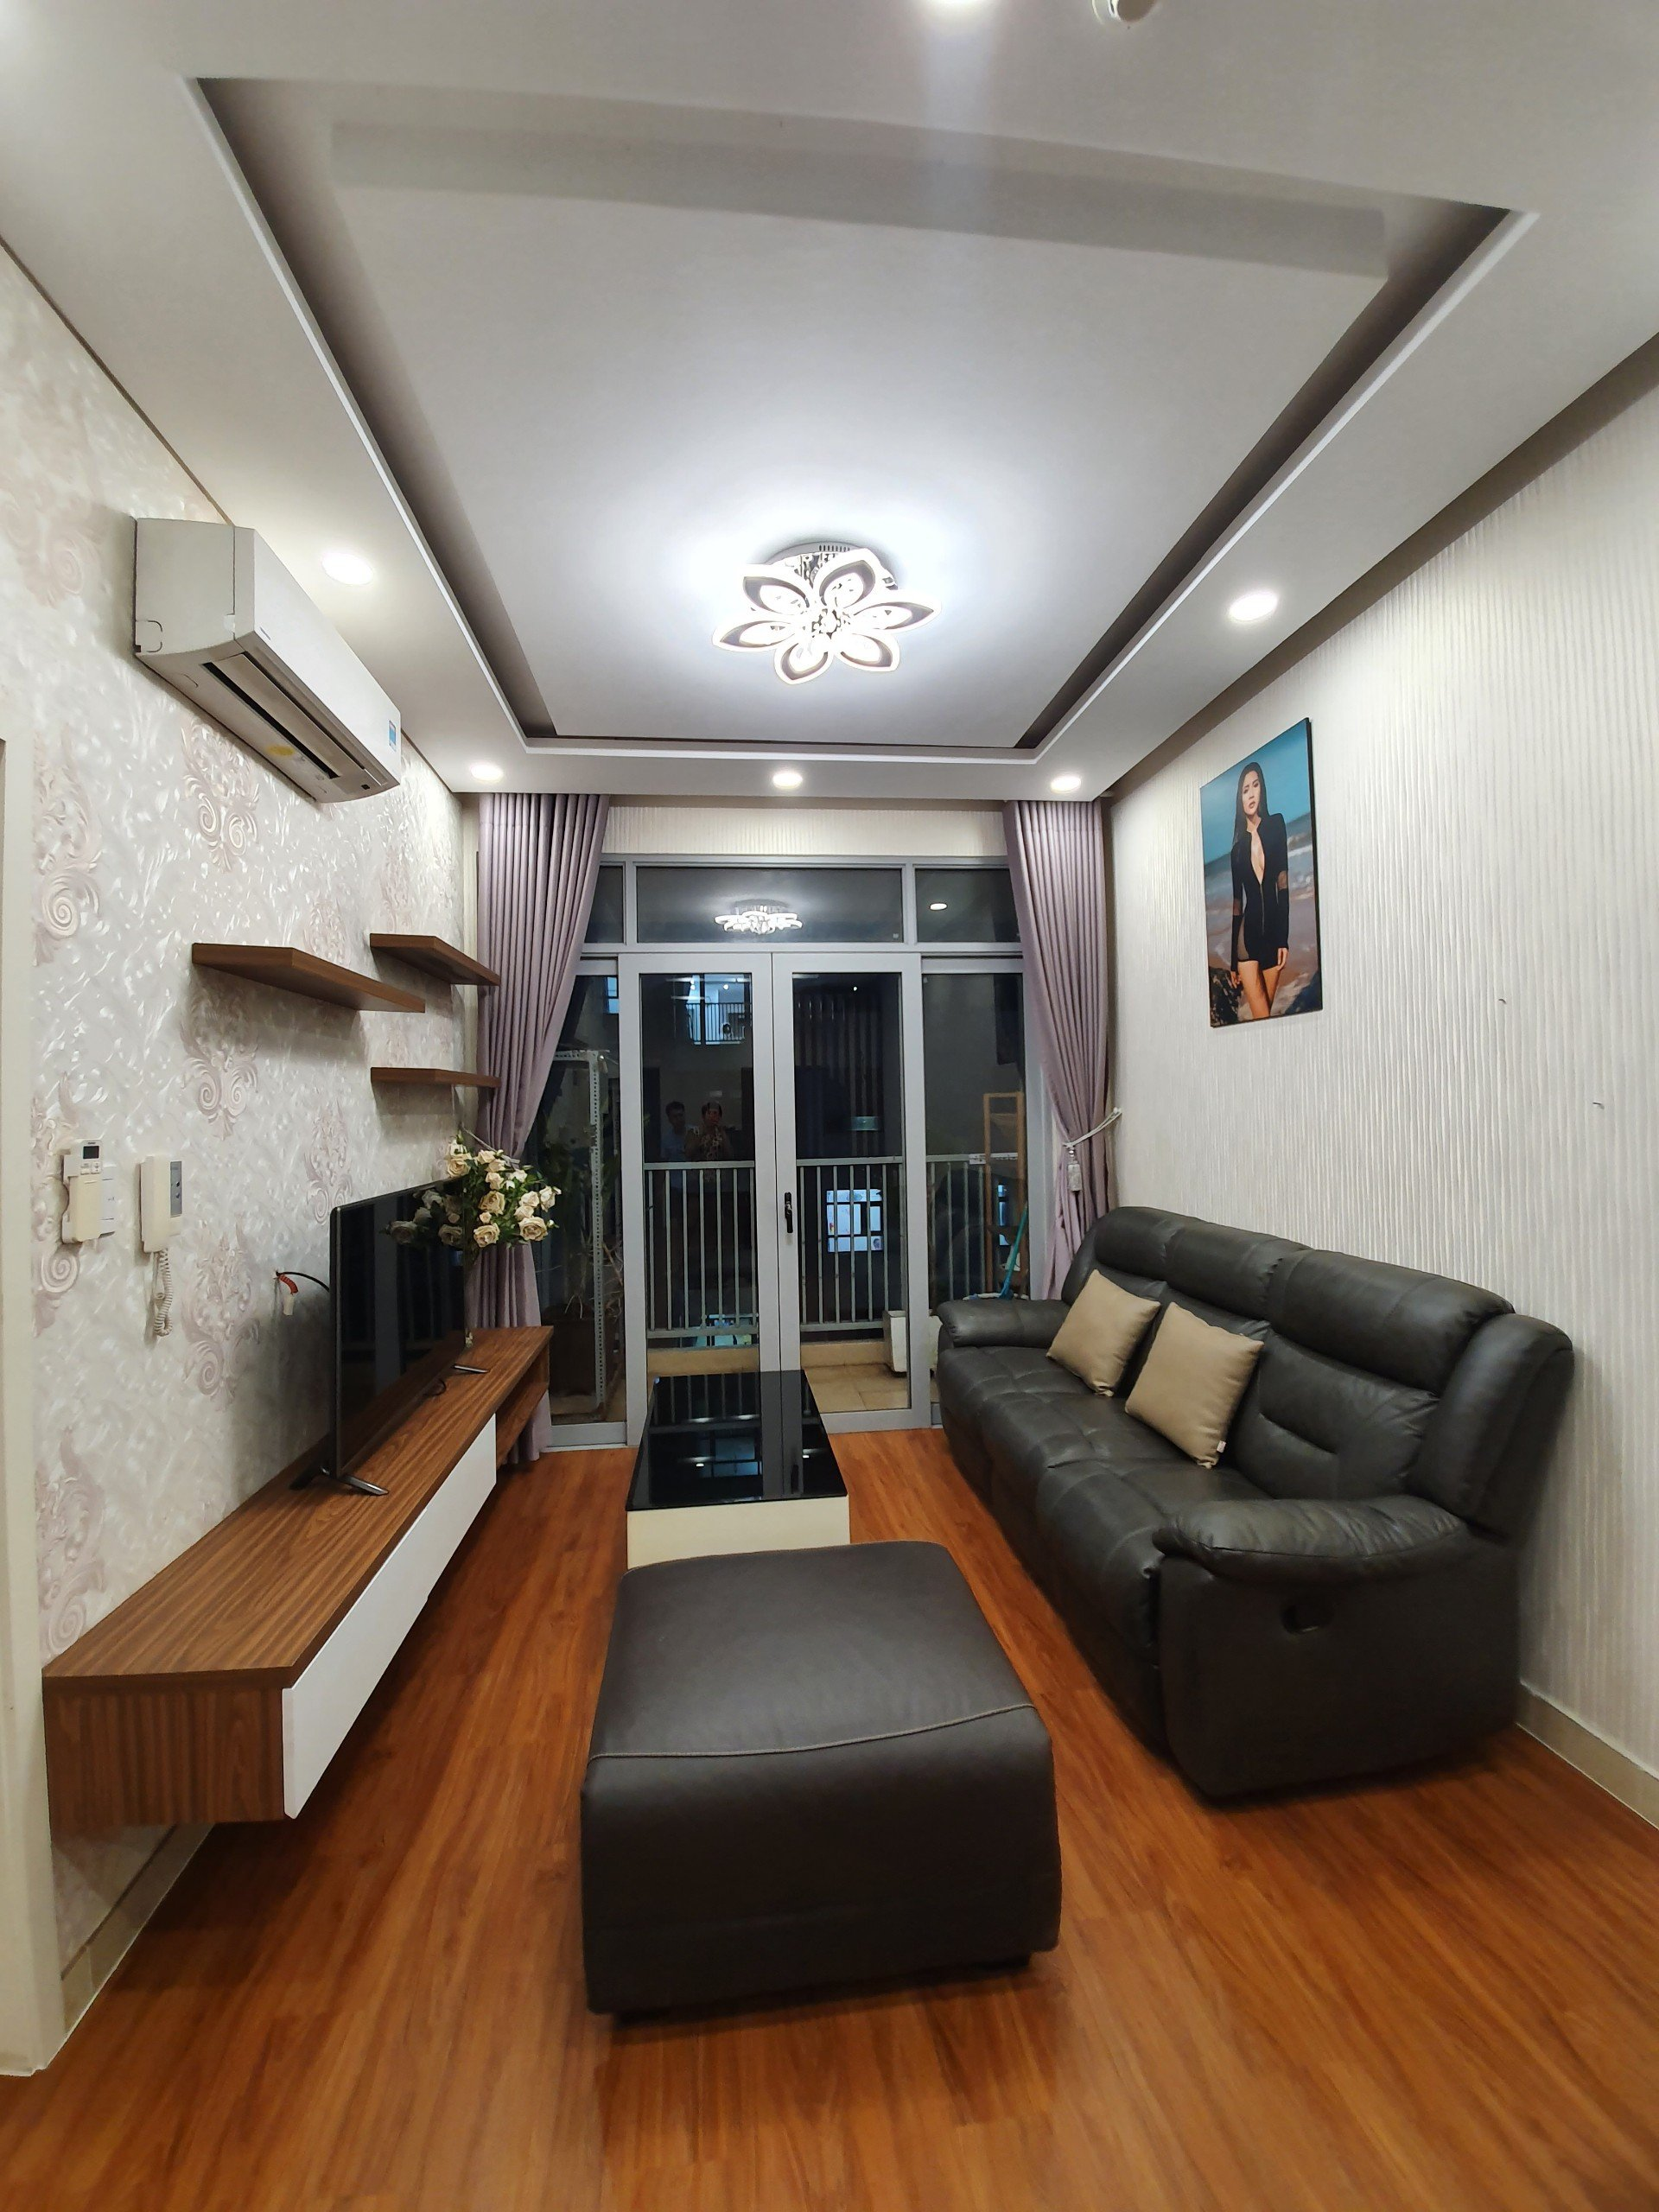 rent Luxcity - 2 bedroom - 2 wc